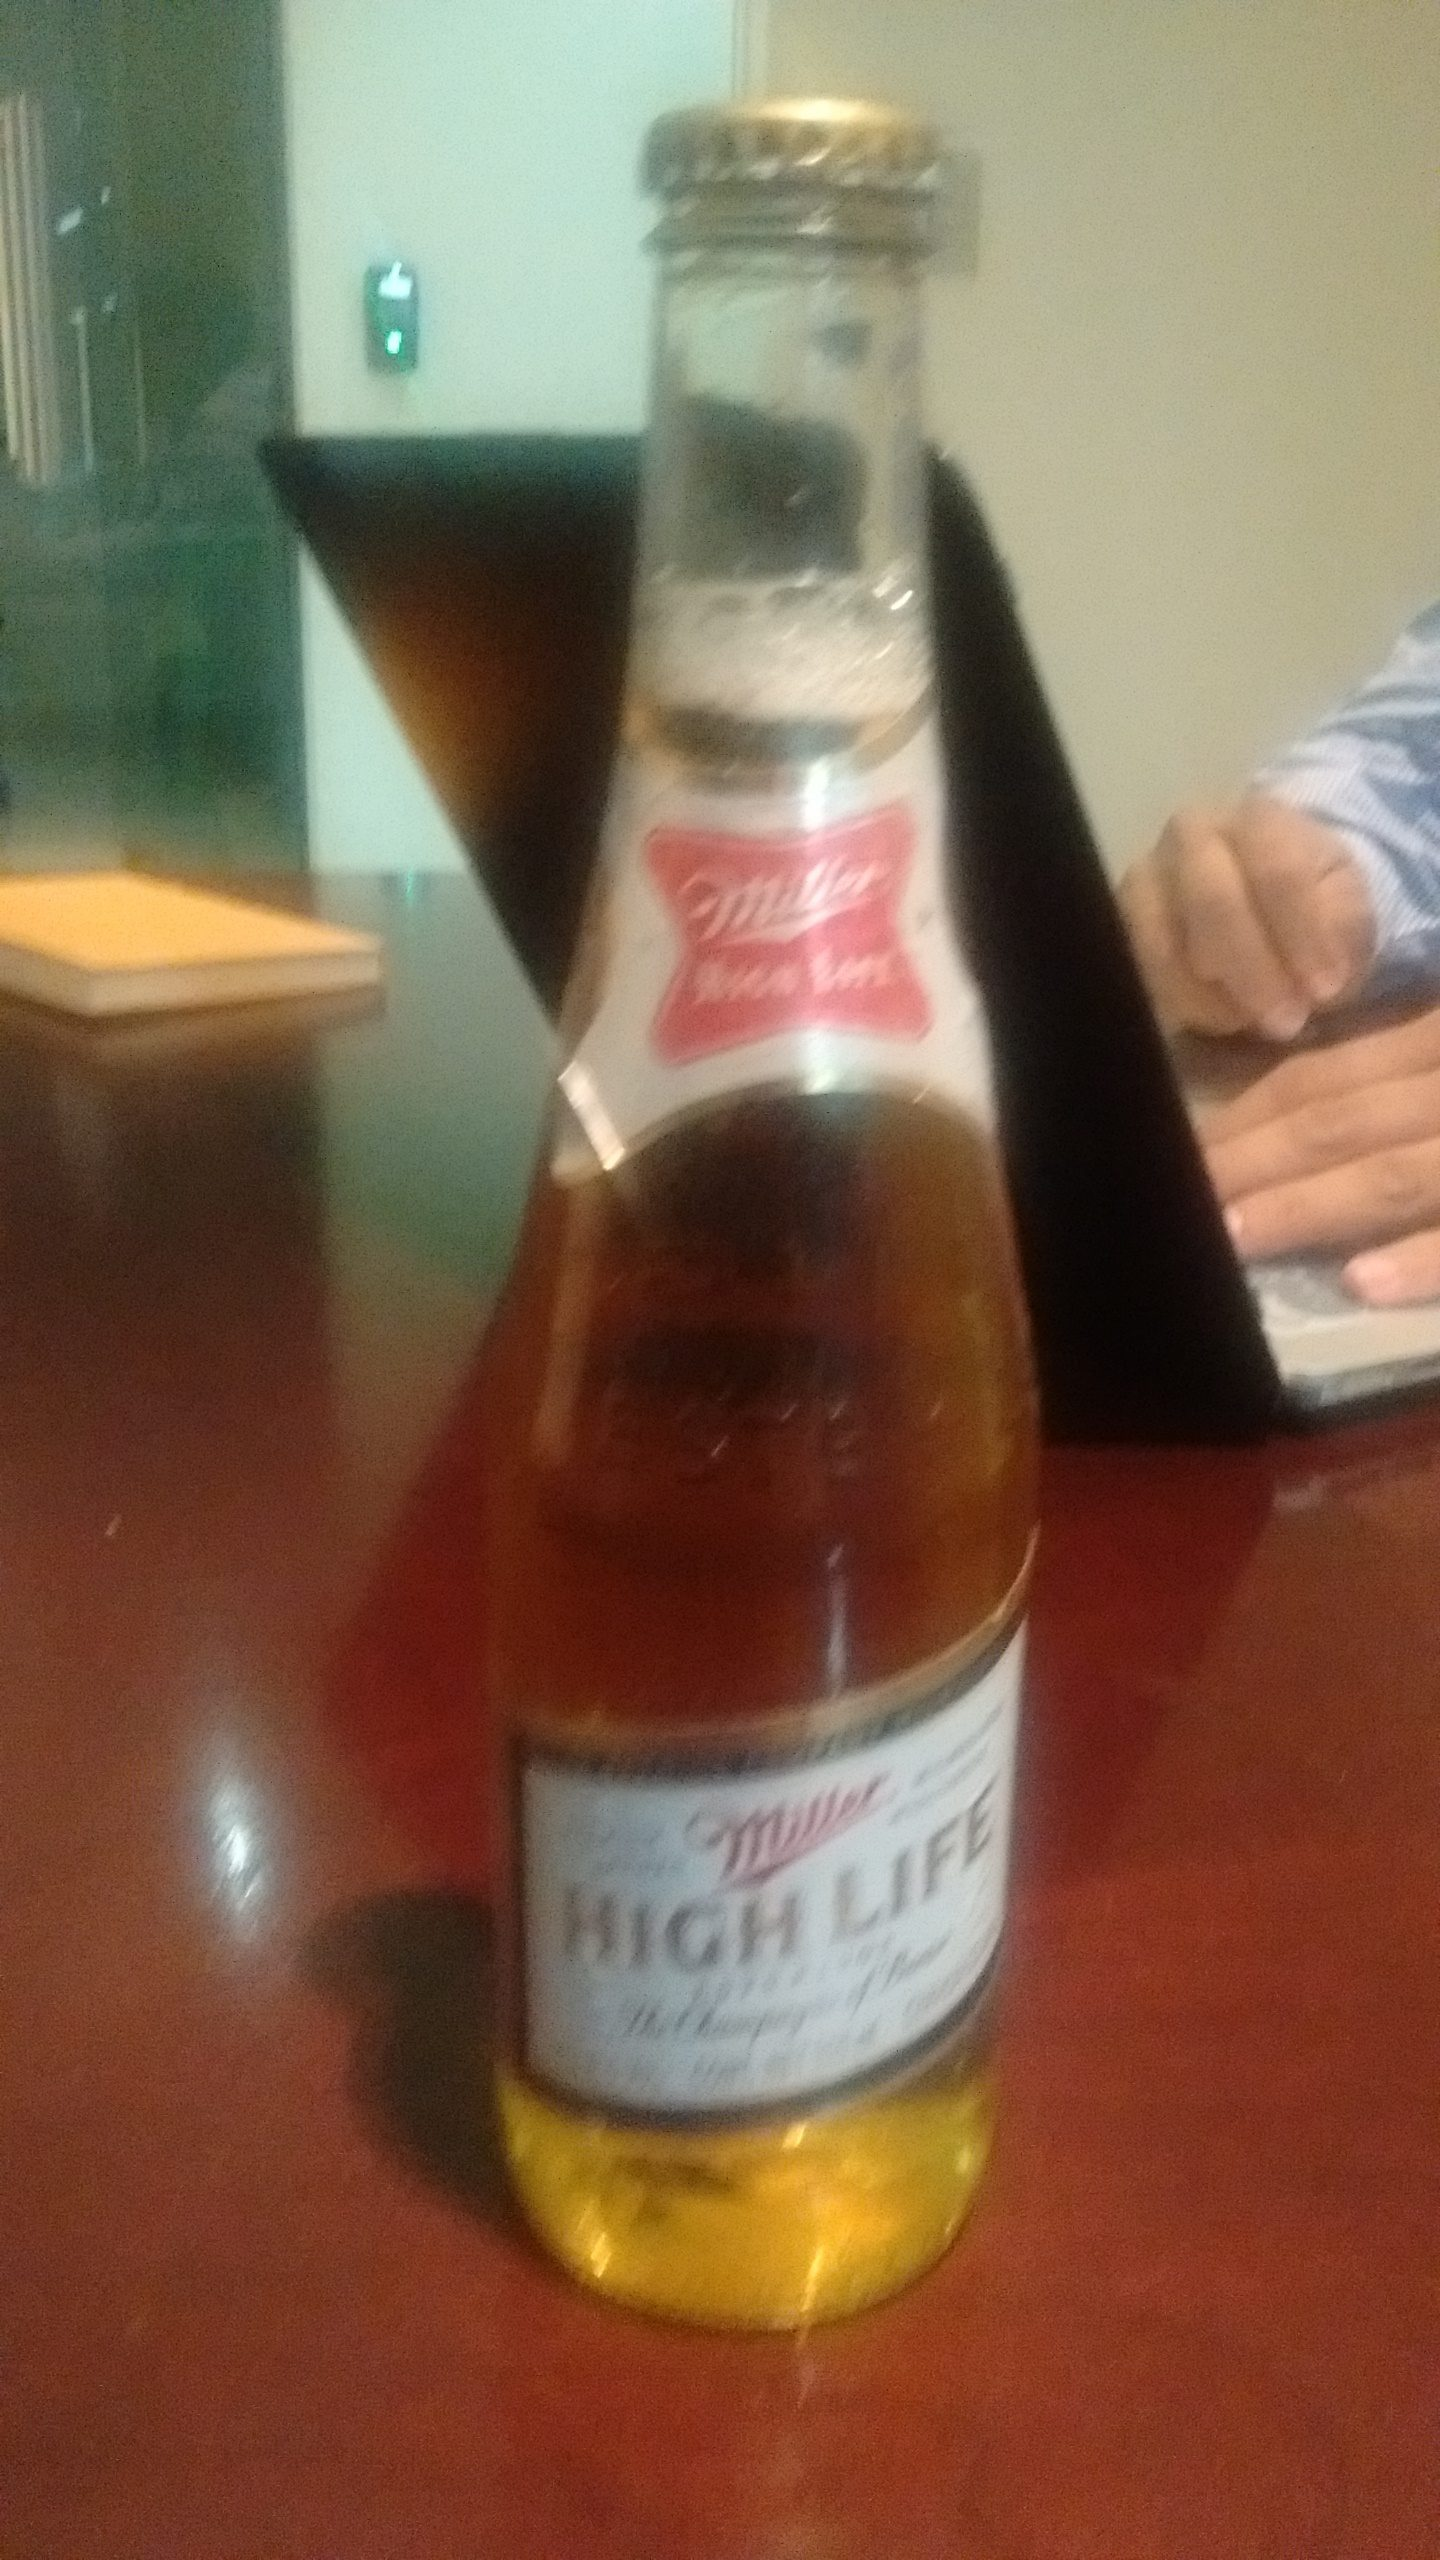 High Life - Product - es